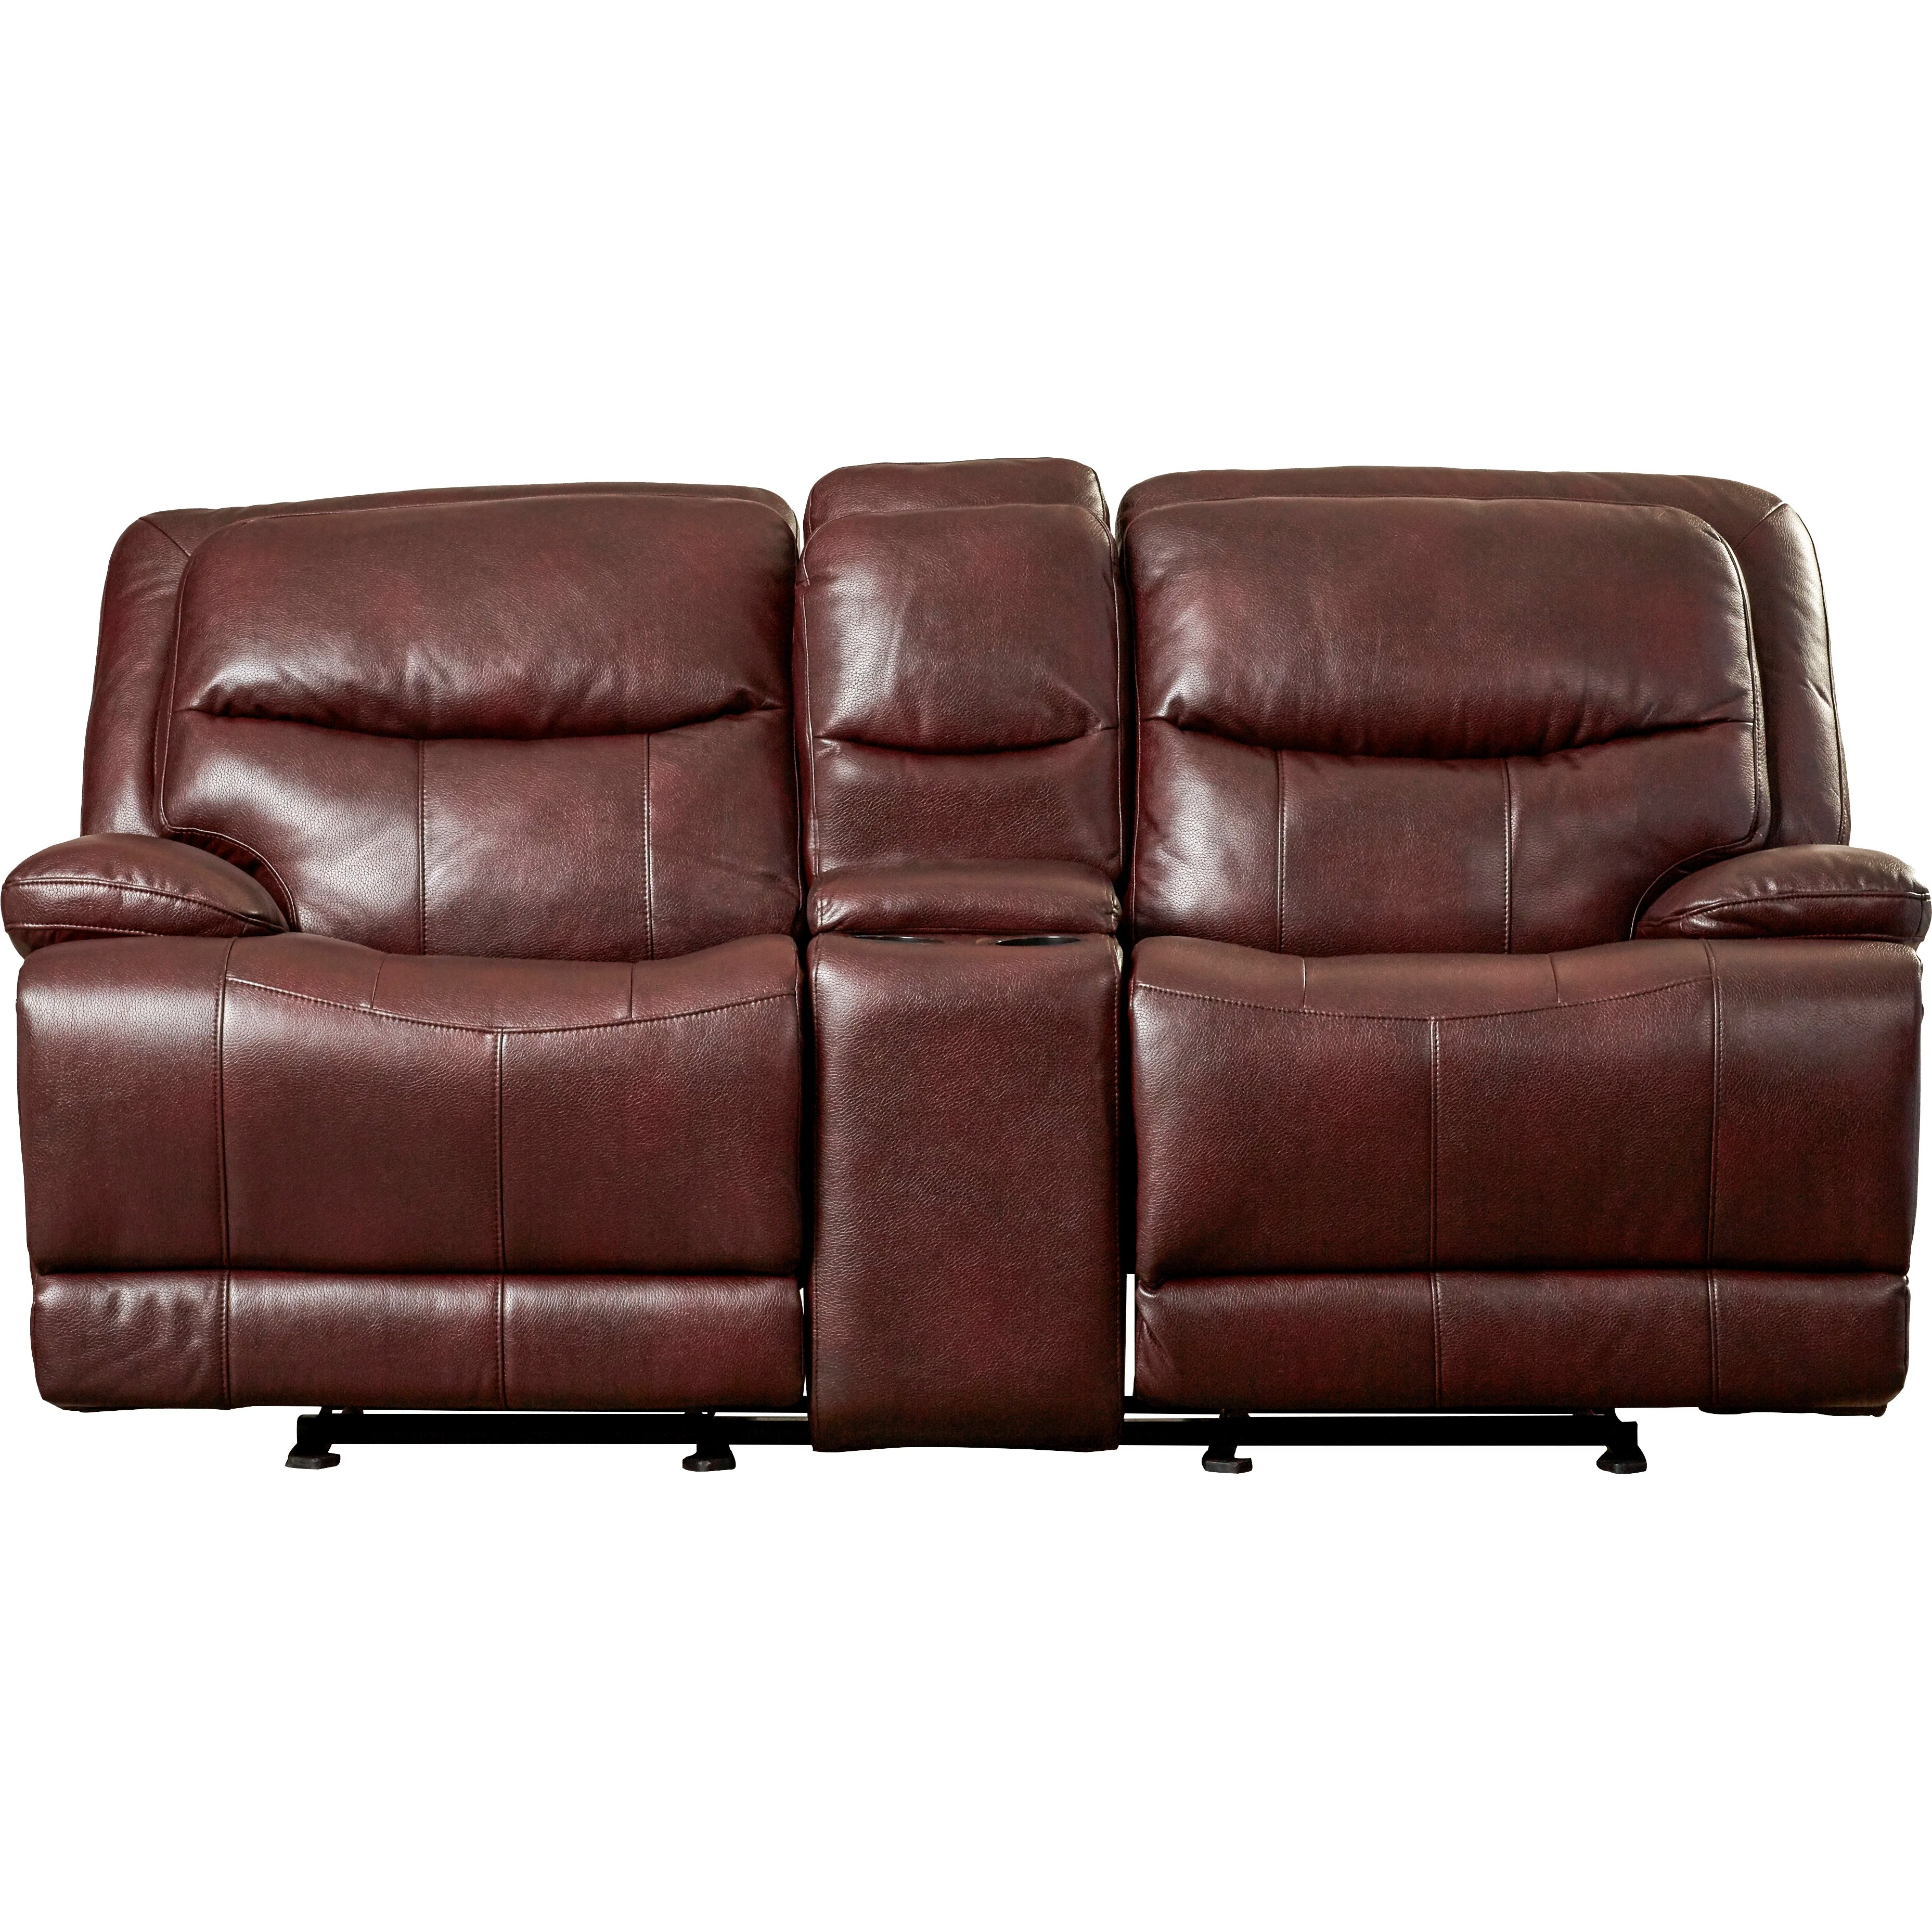 glider sofa ultrasuede preco darby home co golston reclining loveseat and reviews